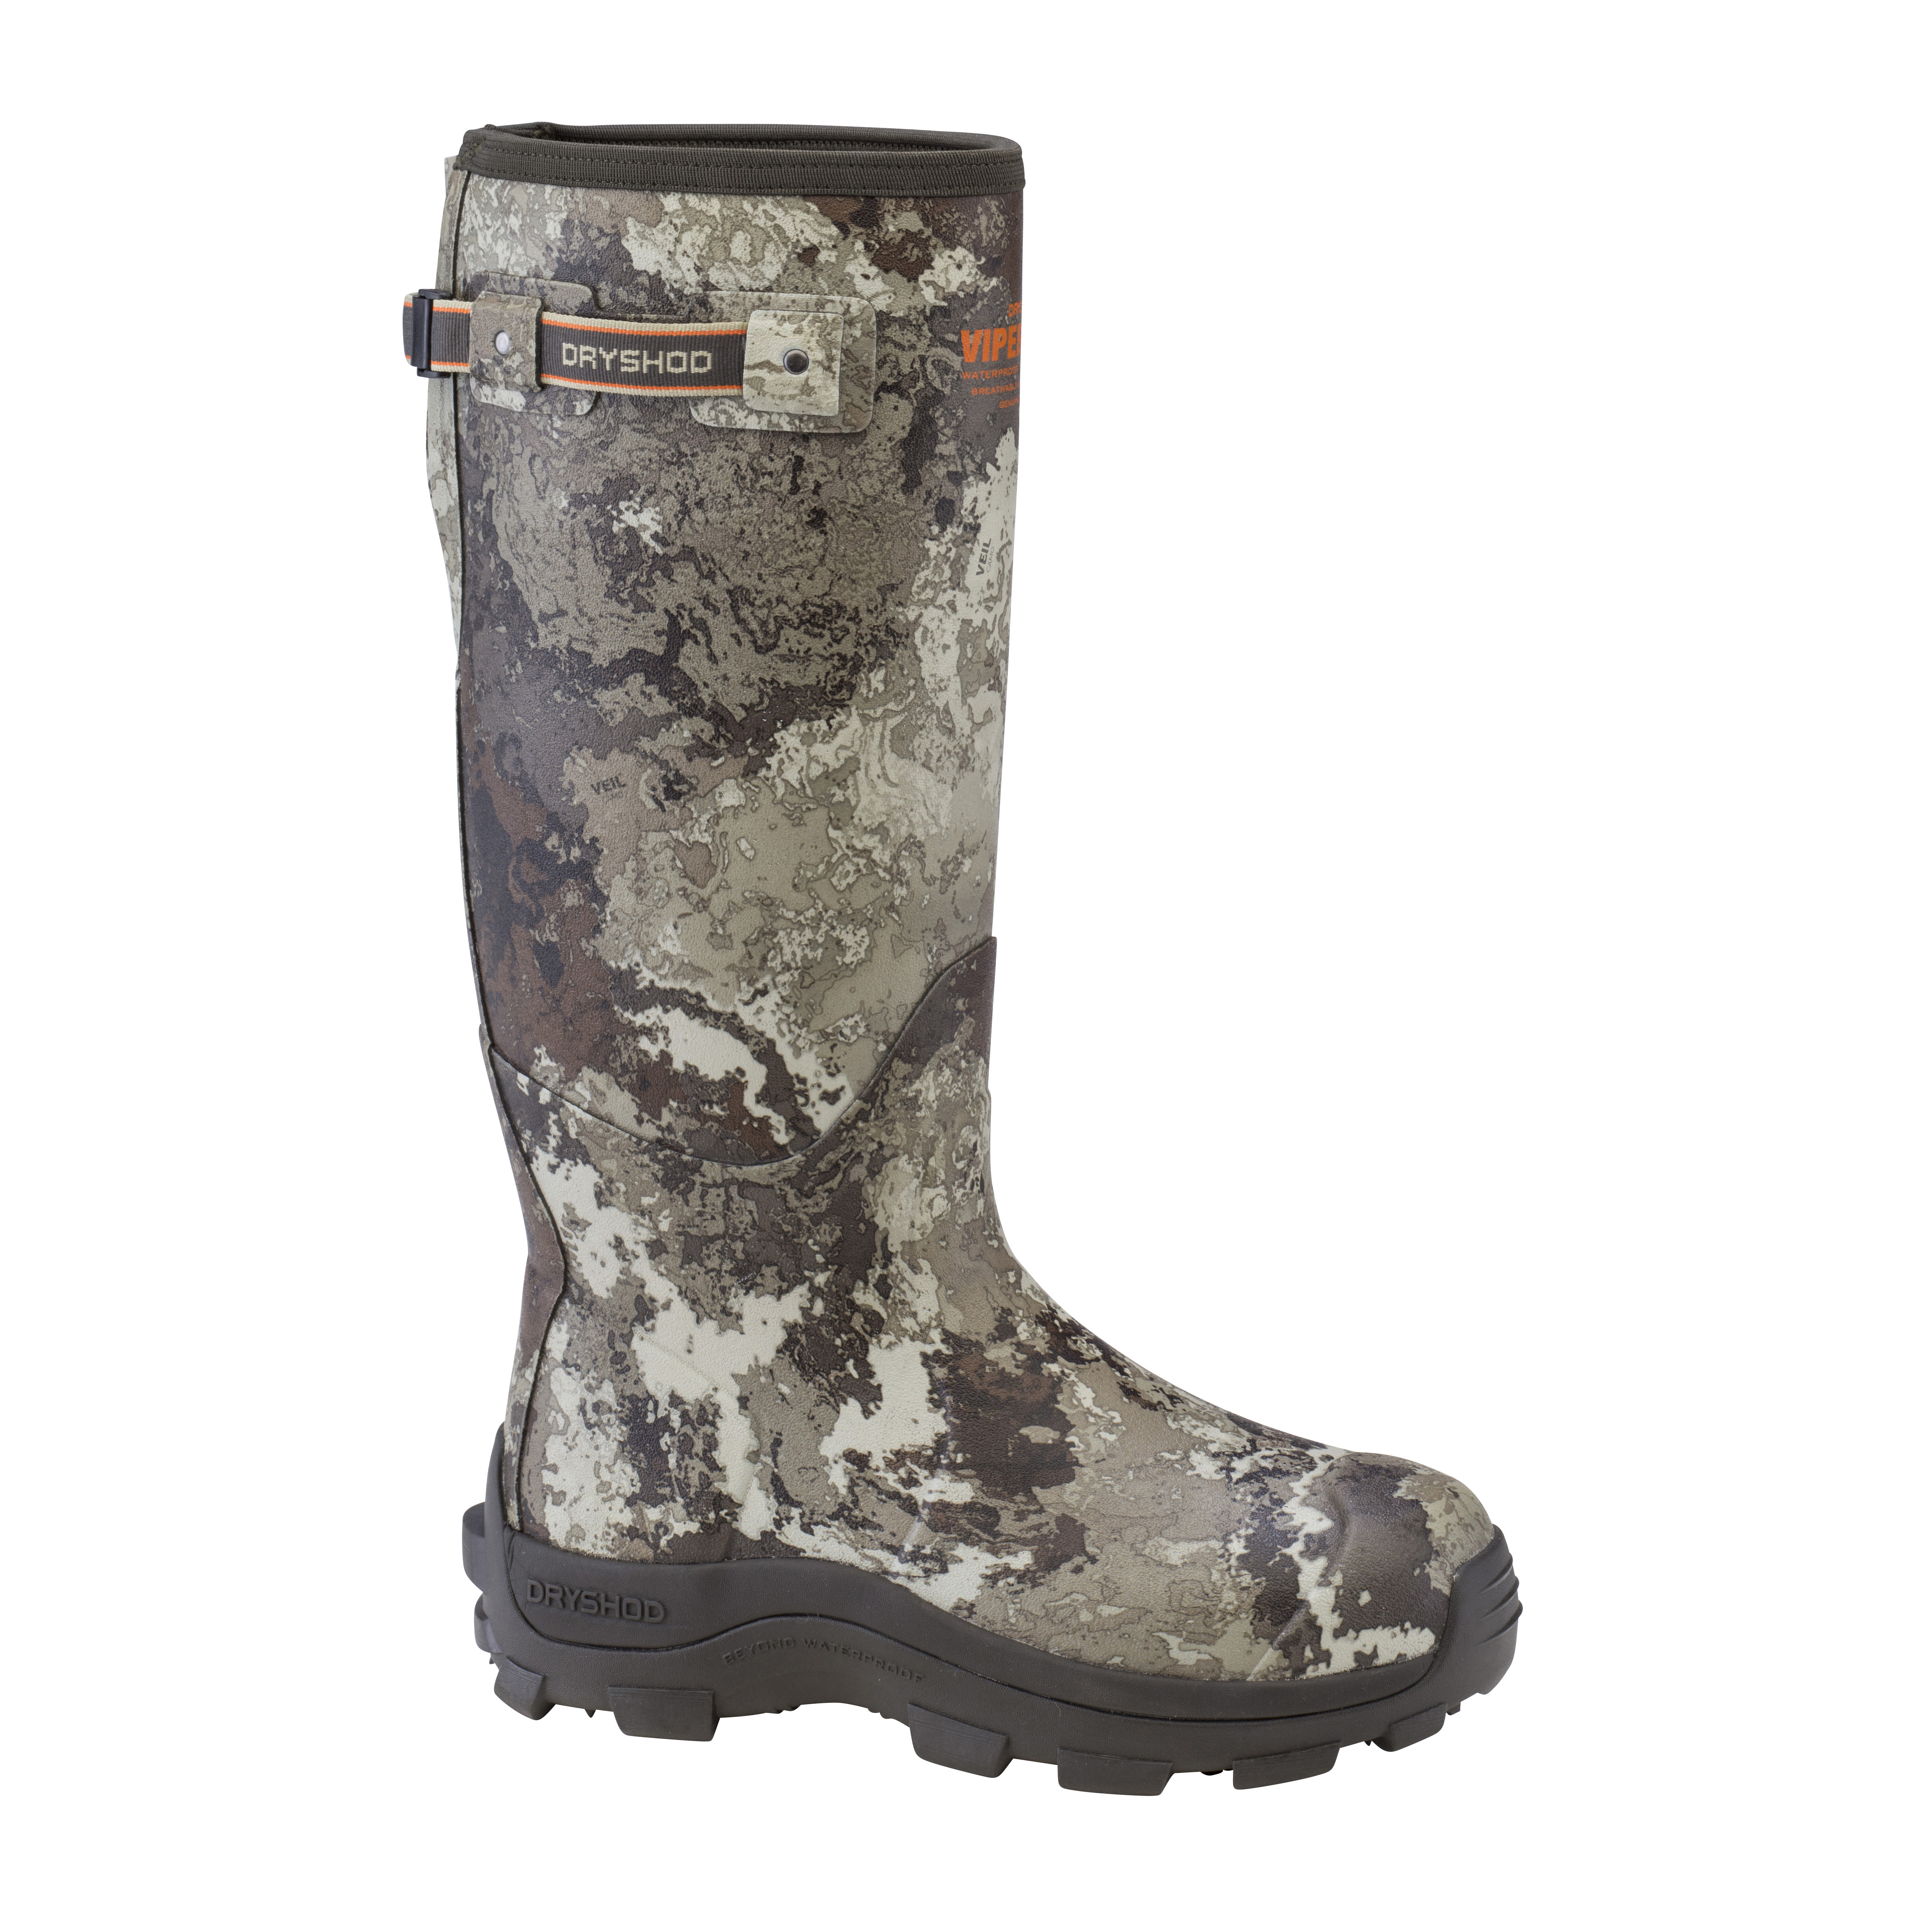 Viper Stop Snake Hunting Boot With Gusset #VPS-MH-CM